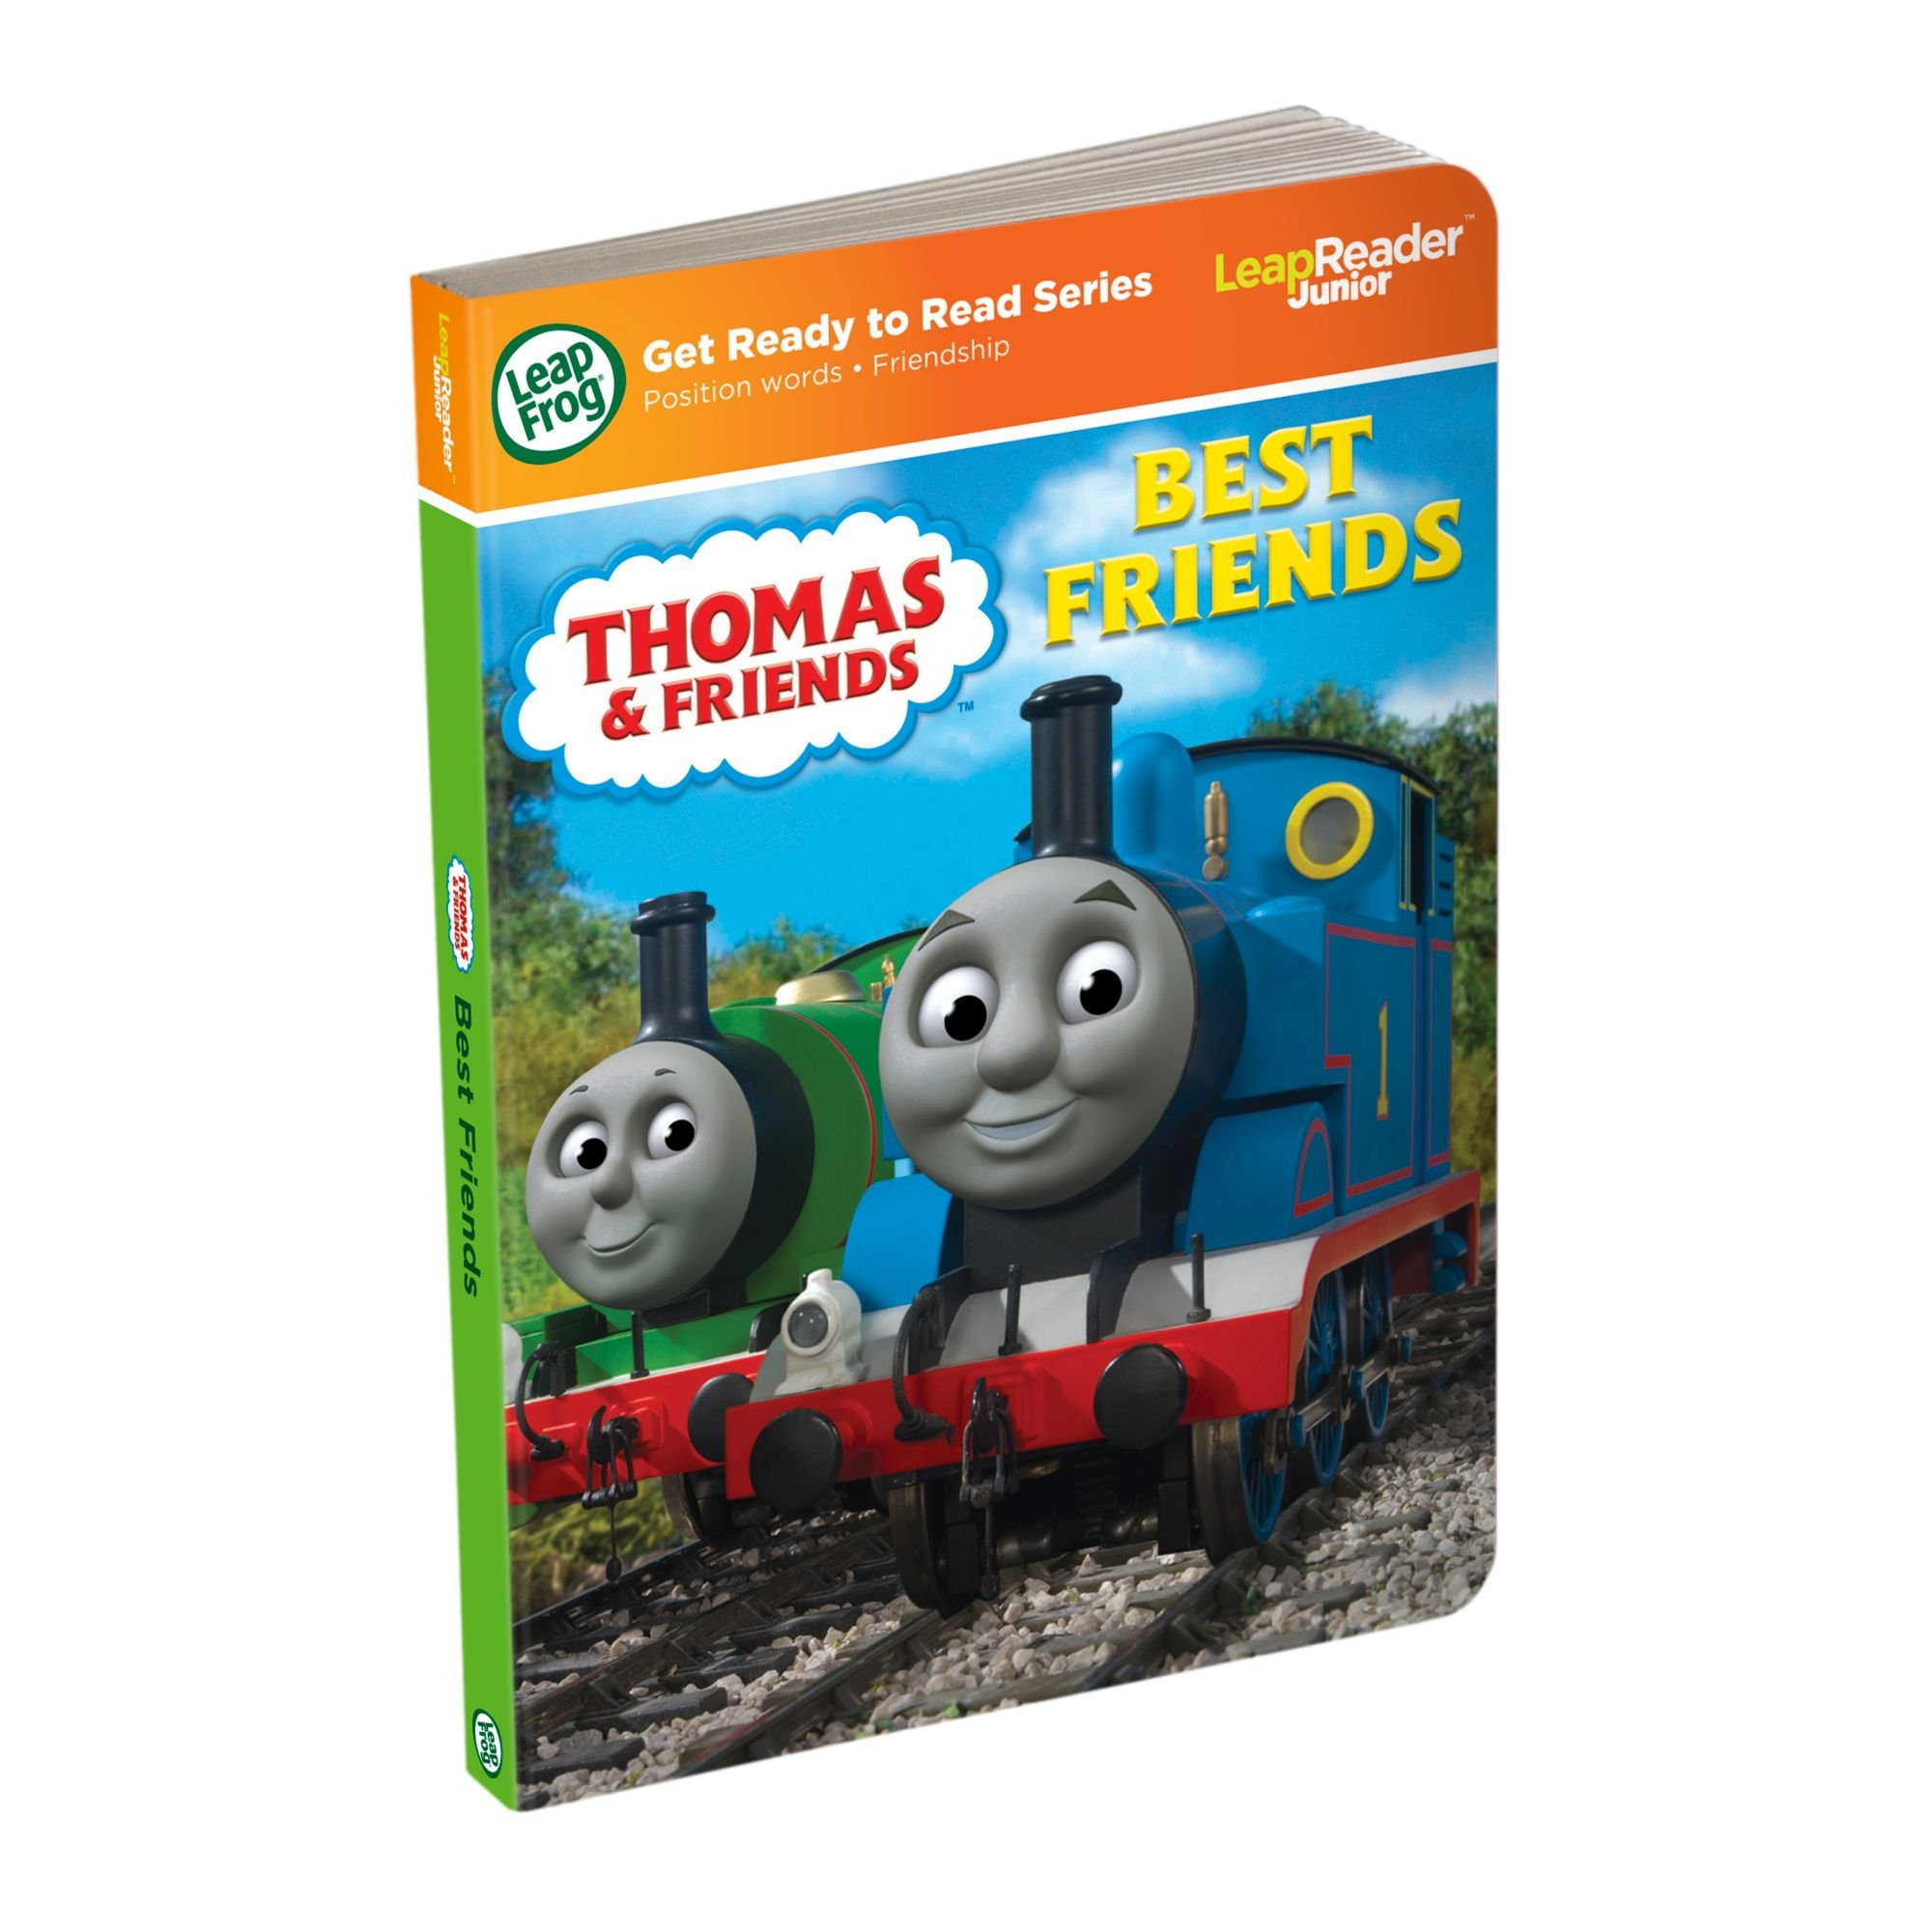 LeapFrog LeapReader Junior Book: Thomas & Friends: Best Friends (works with Tag Junior) by LeapFrog (Image #1)